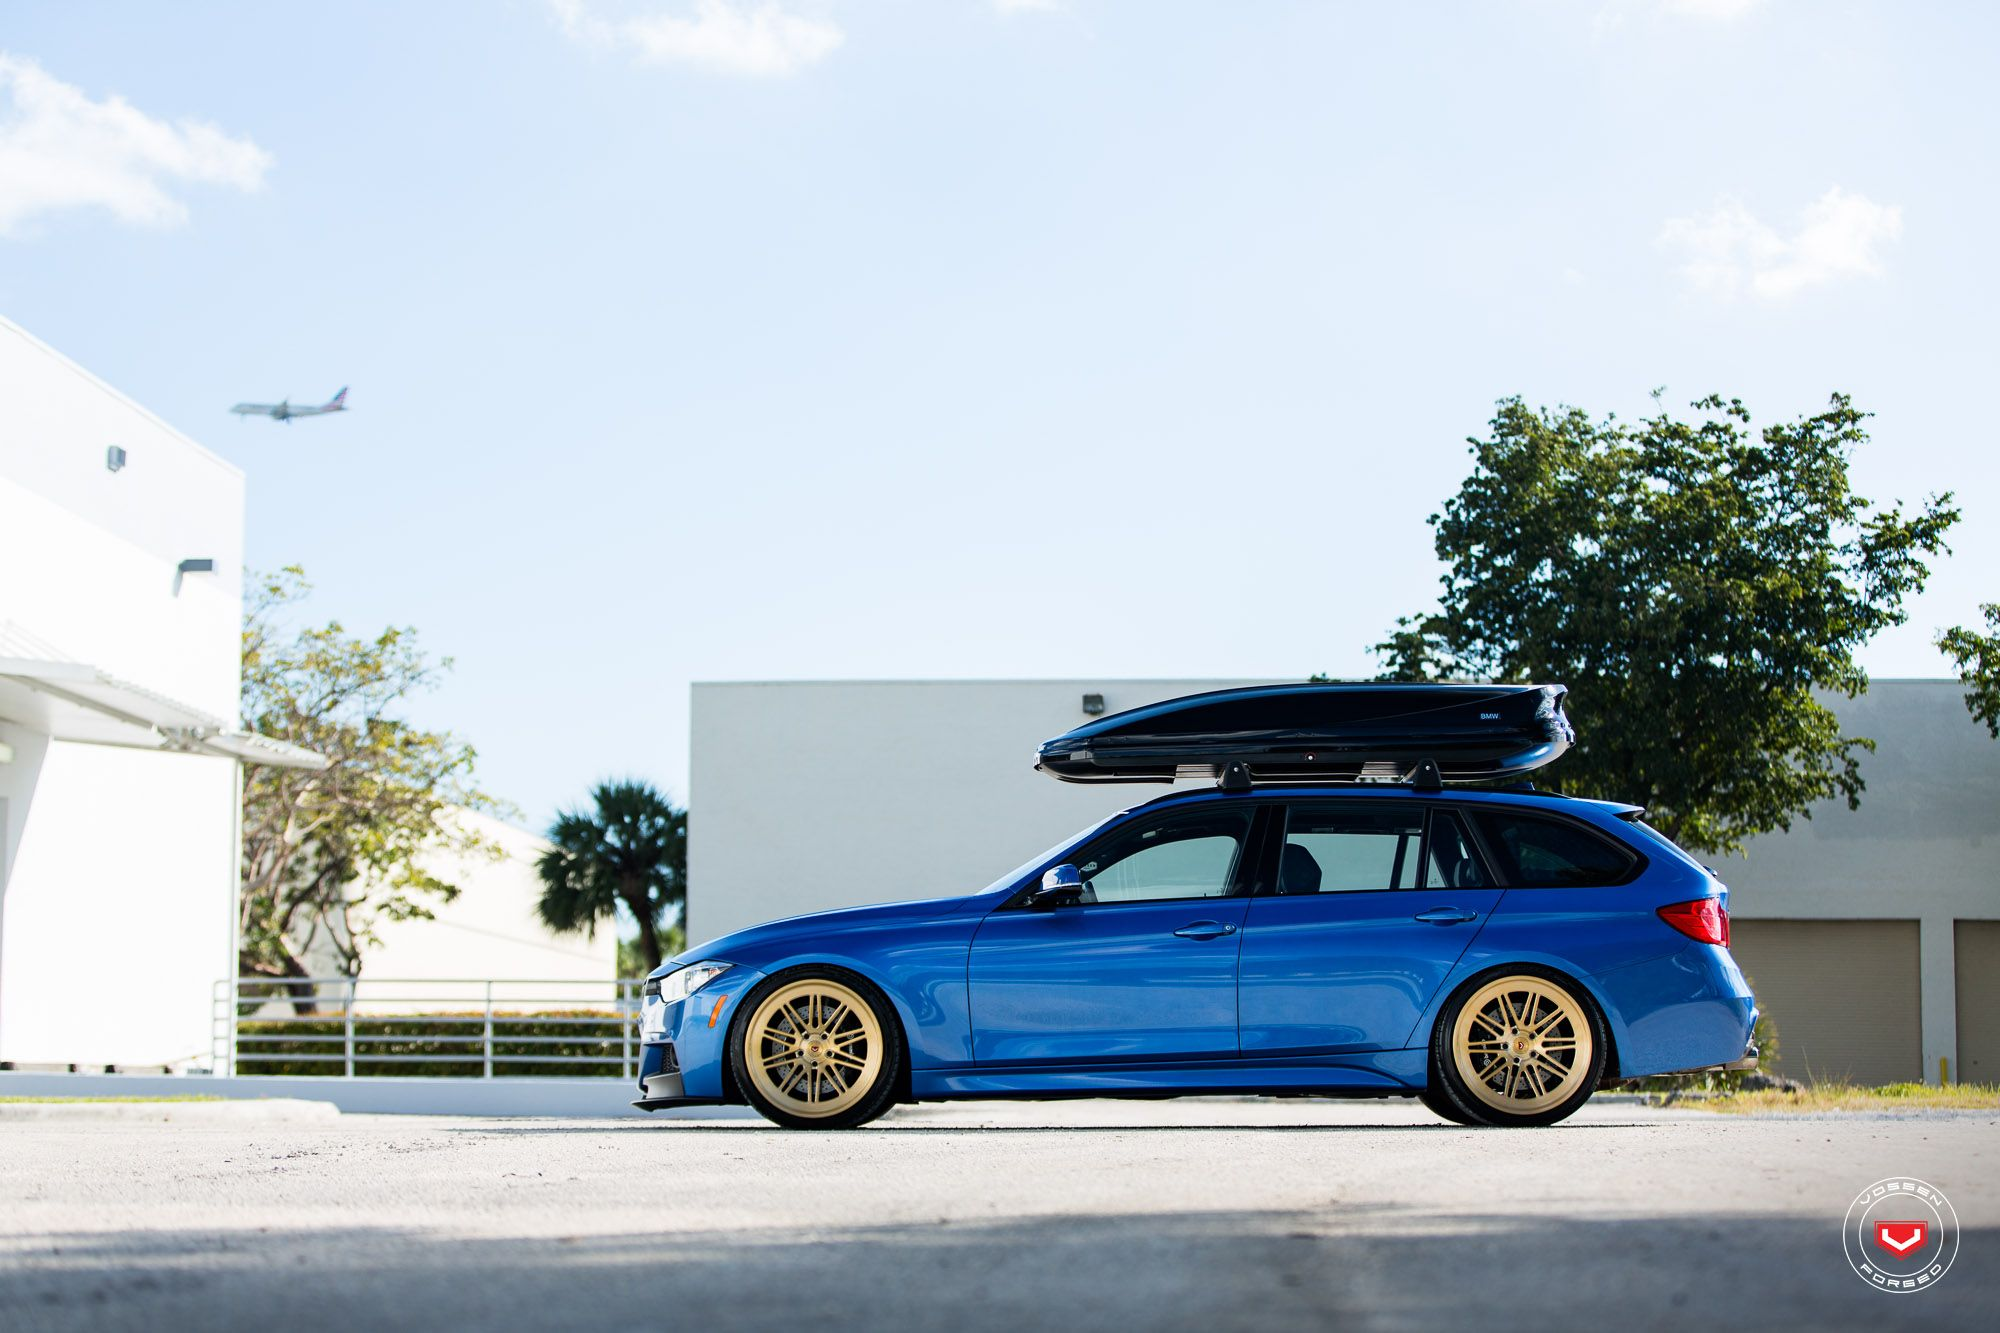 Bmw 328i Wagon On Vossen Wheels Modified Bmw T